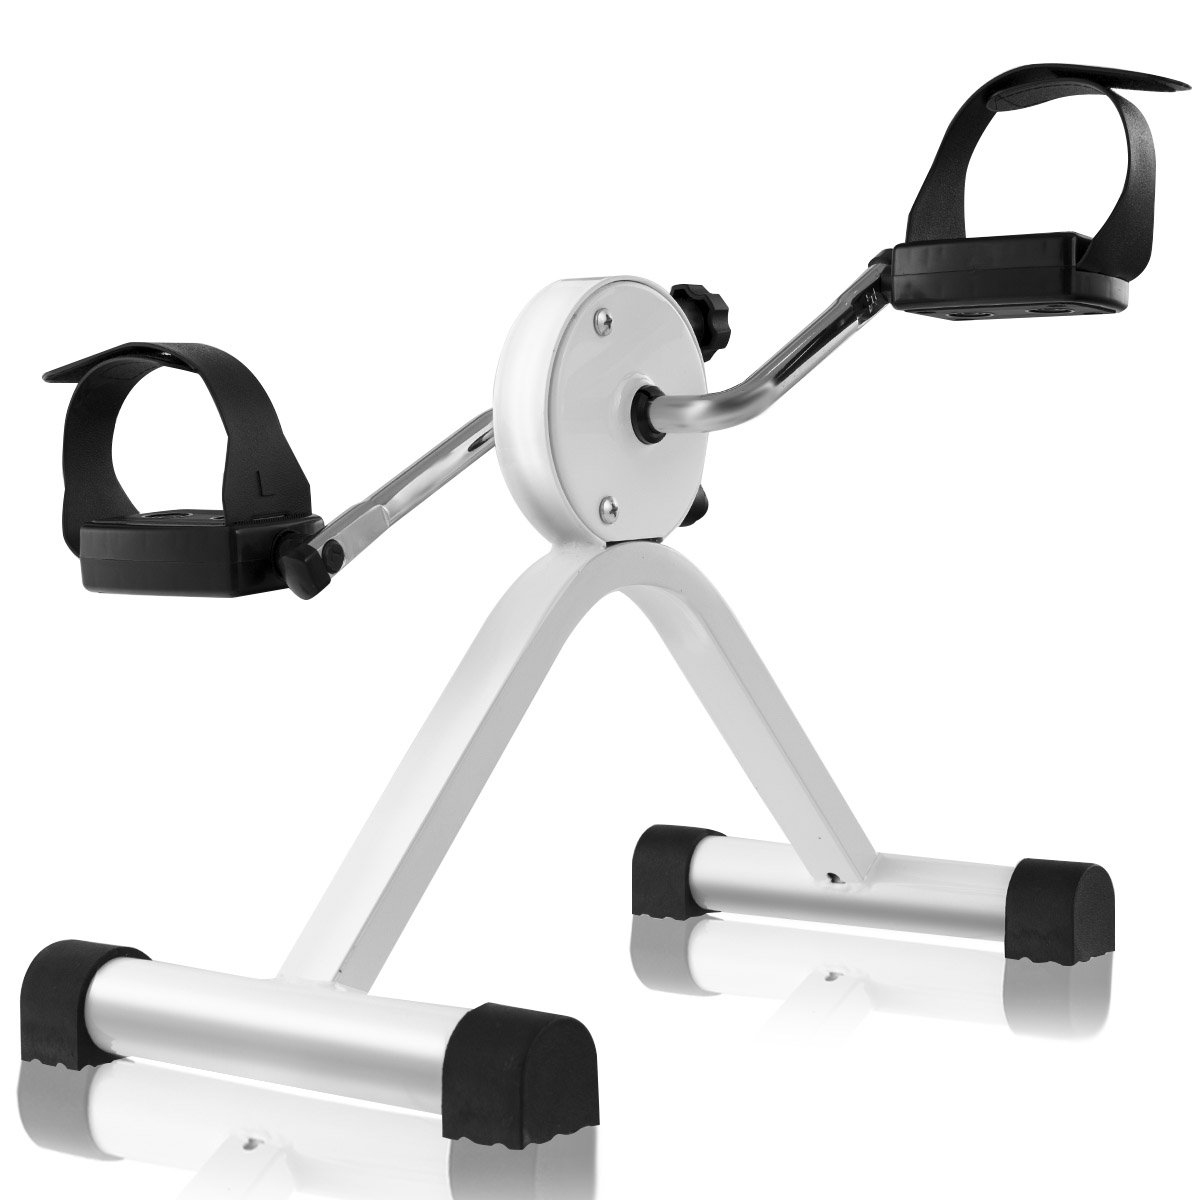 Goplus Portable Pedal Exerciser Desk Bike with Adjustable Resistance Mini Exercise Bike for Arms, Legs by Goplus